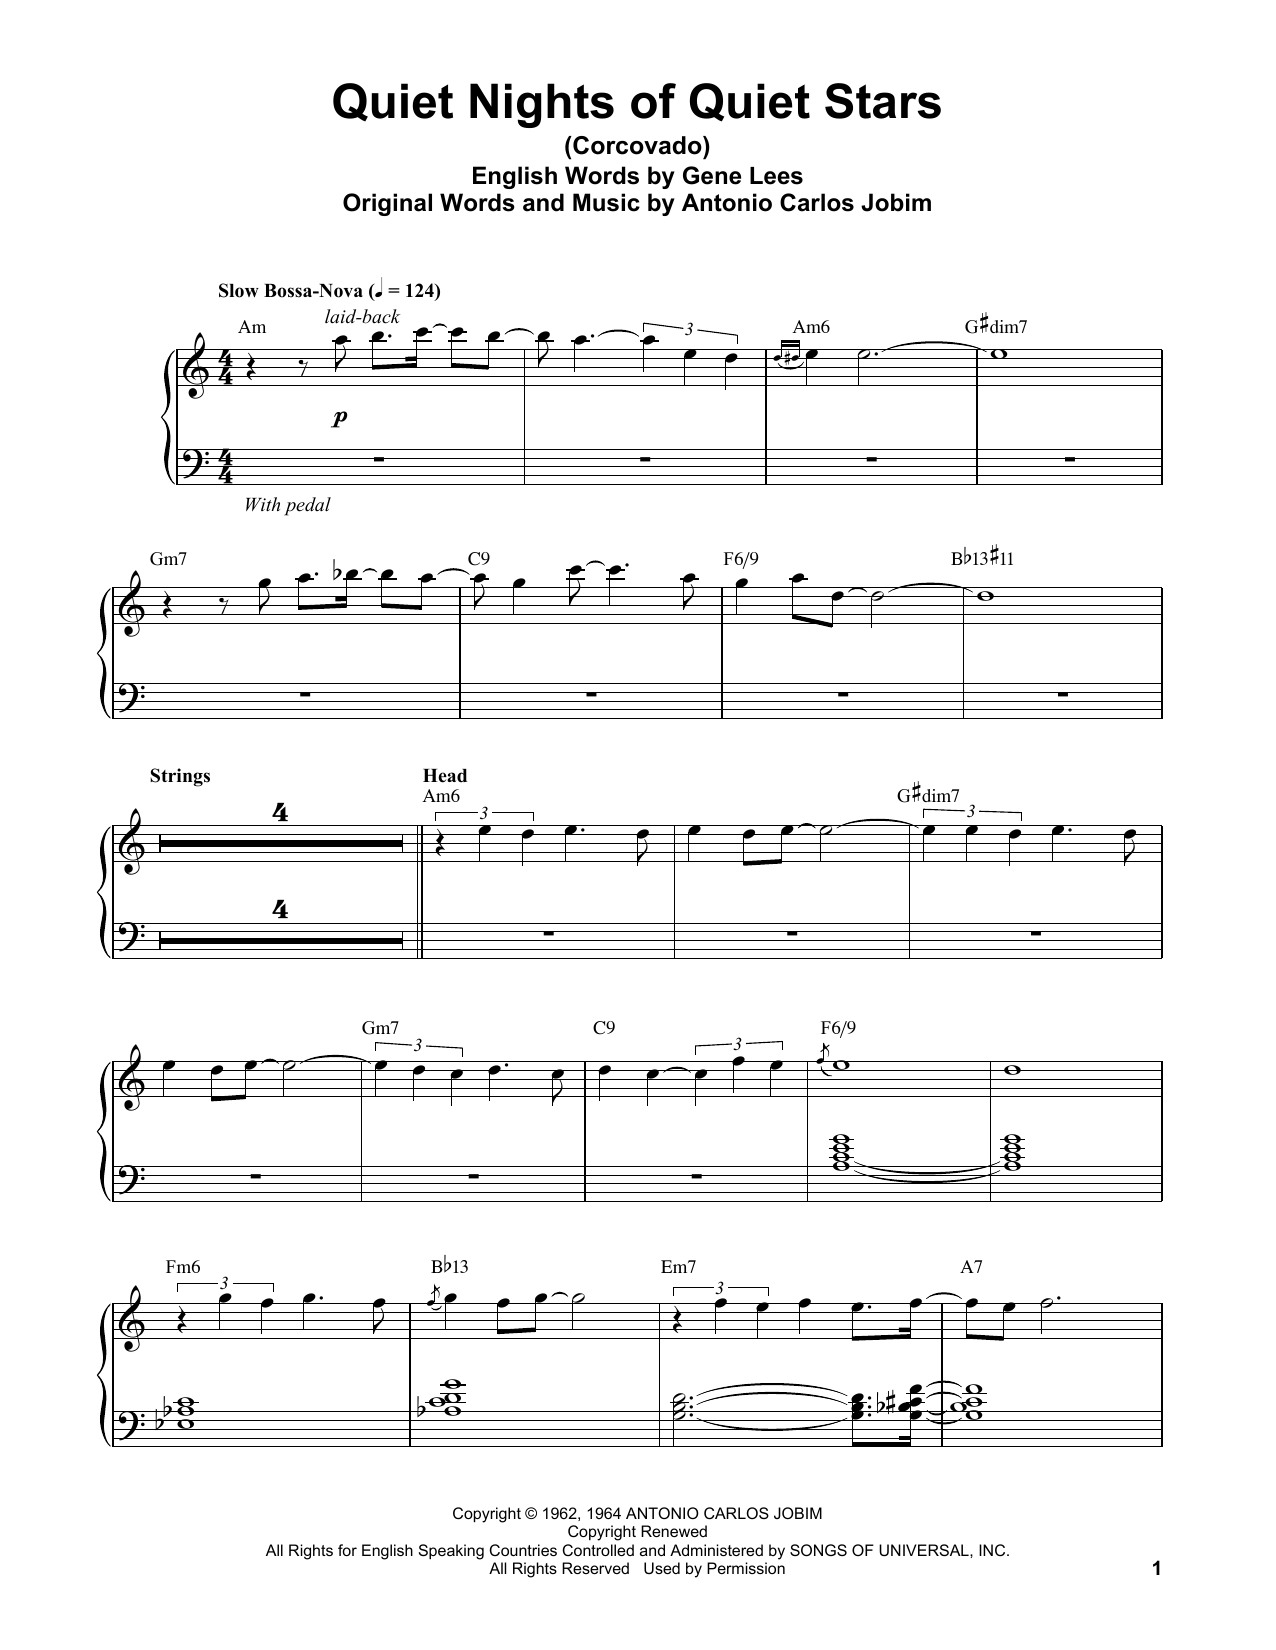 Vince Guaraldi Quiet Nights Of Quiet Stars (Corcovado) sheet music notes and chords. Download Printable PDF.